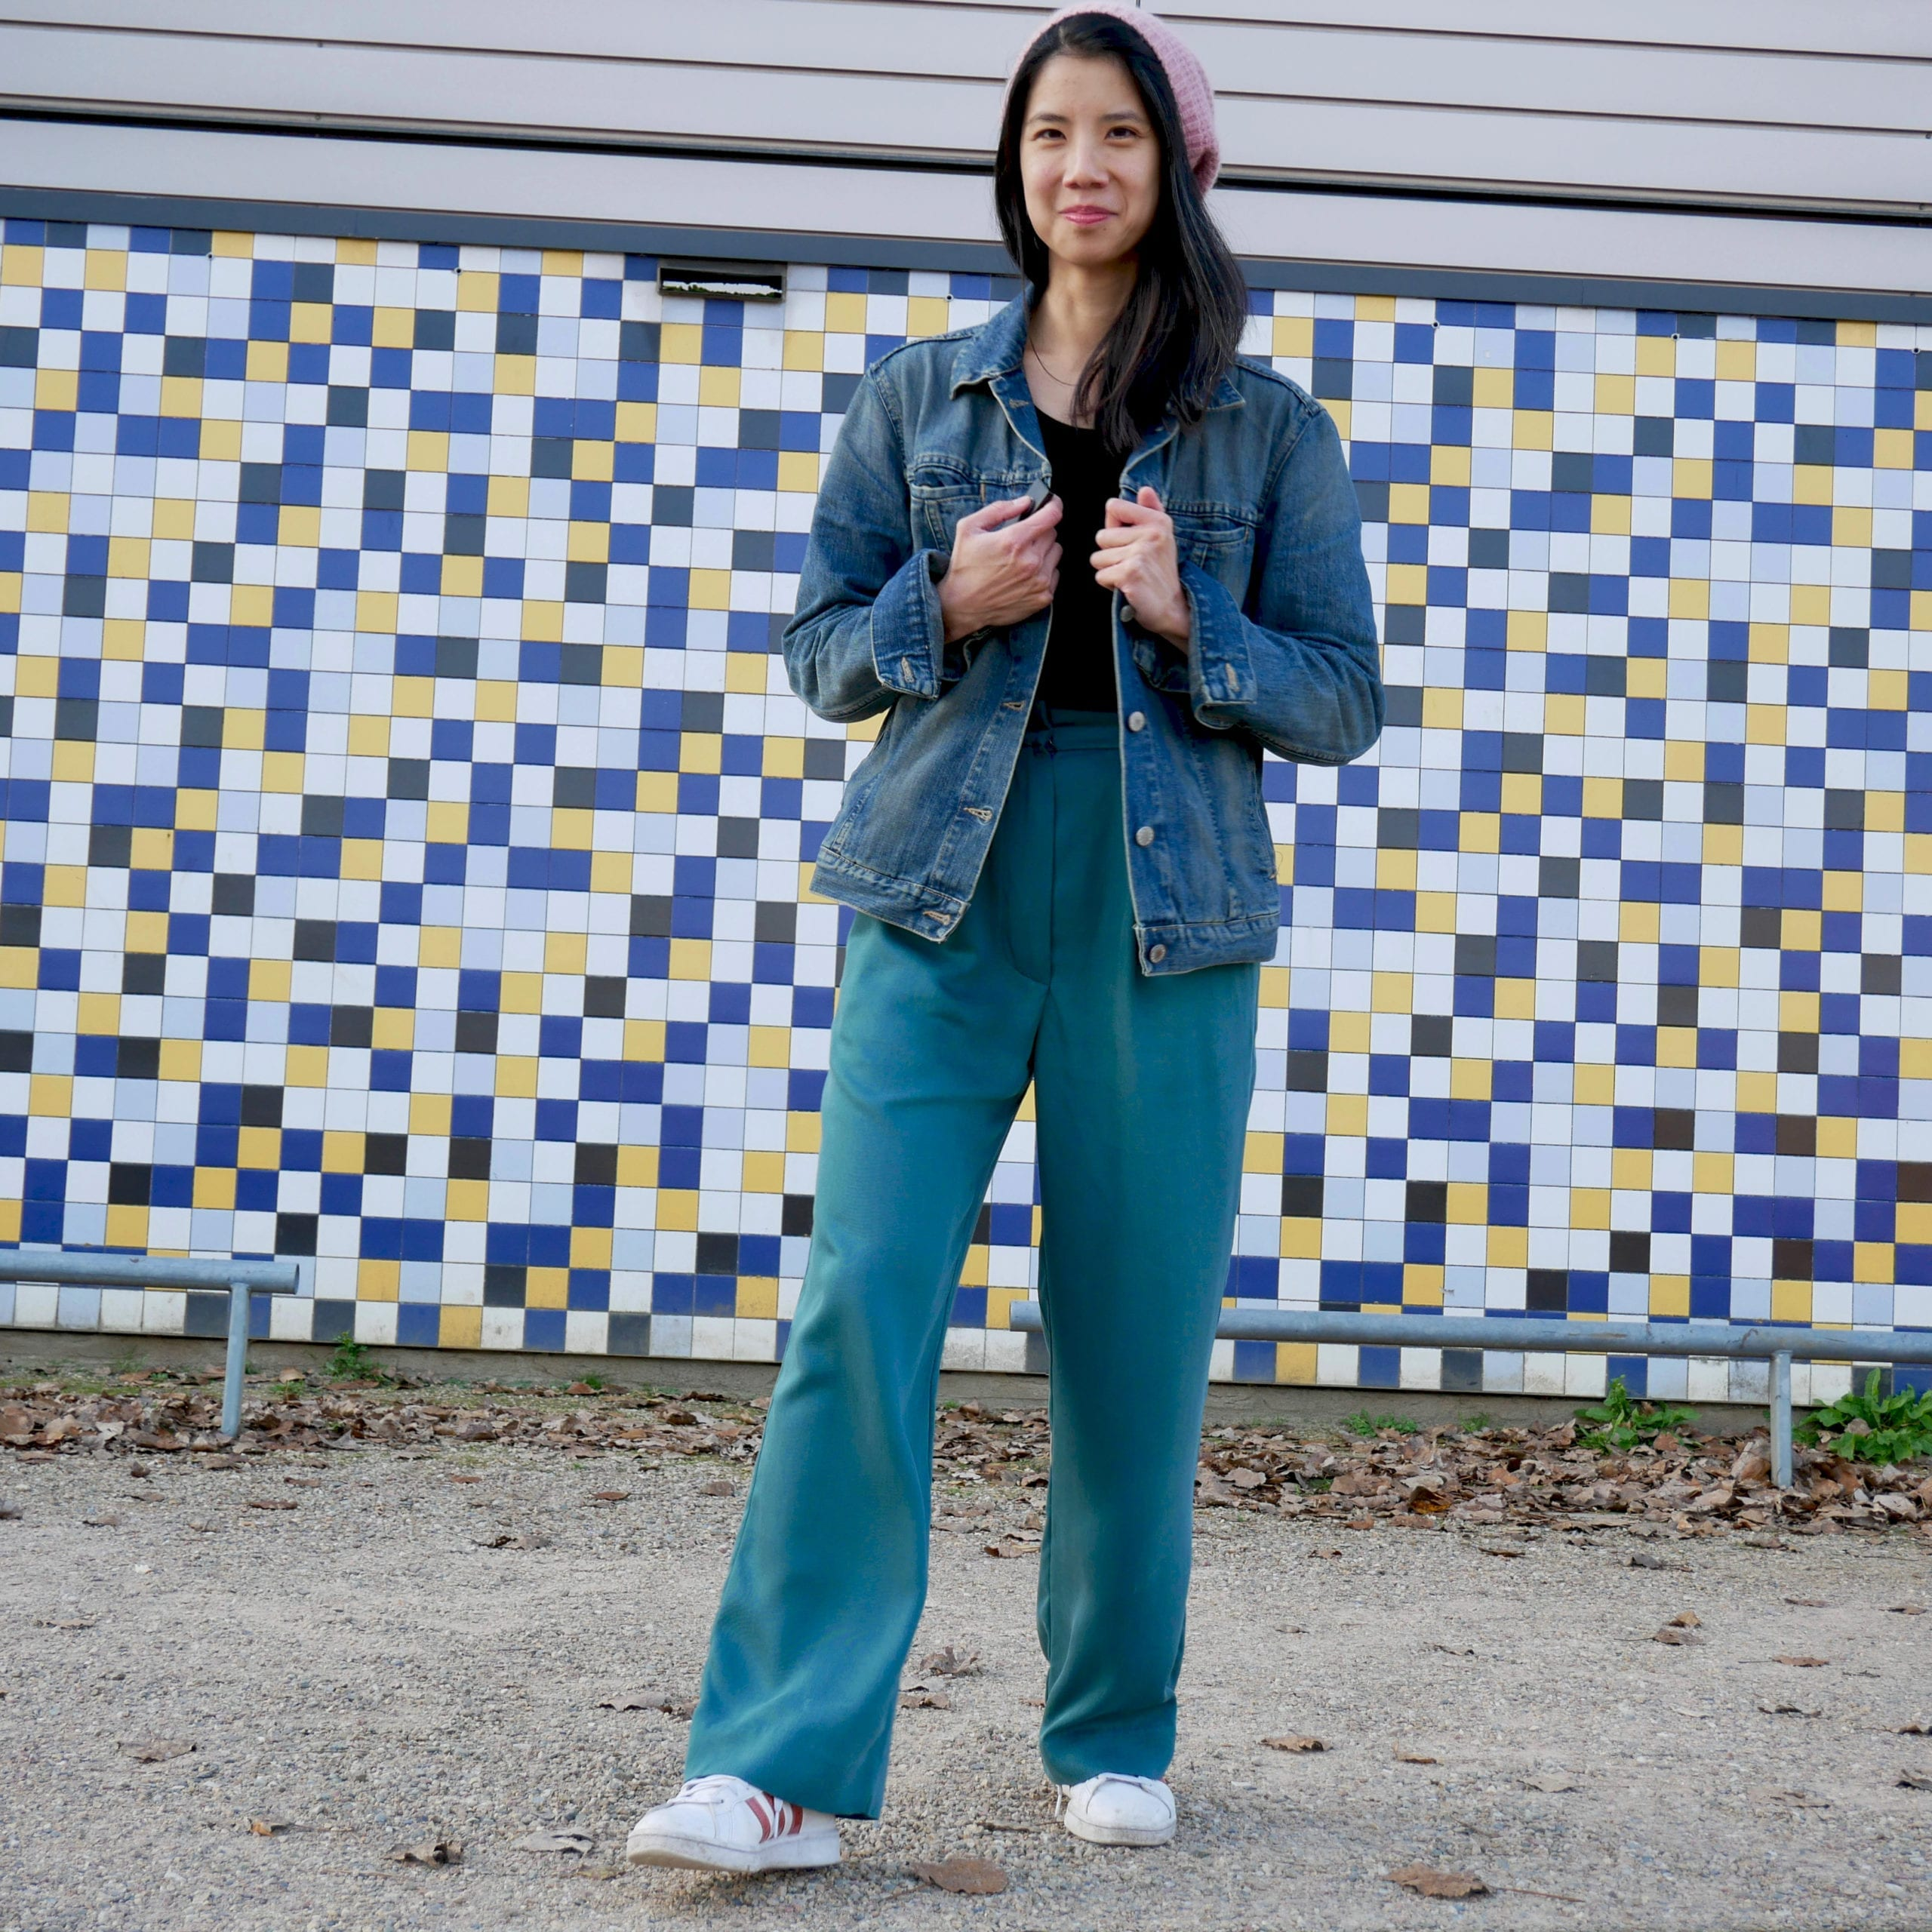 Just Patterns Tatjana trousers by Time to Sew, styled with vintage denim